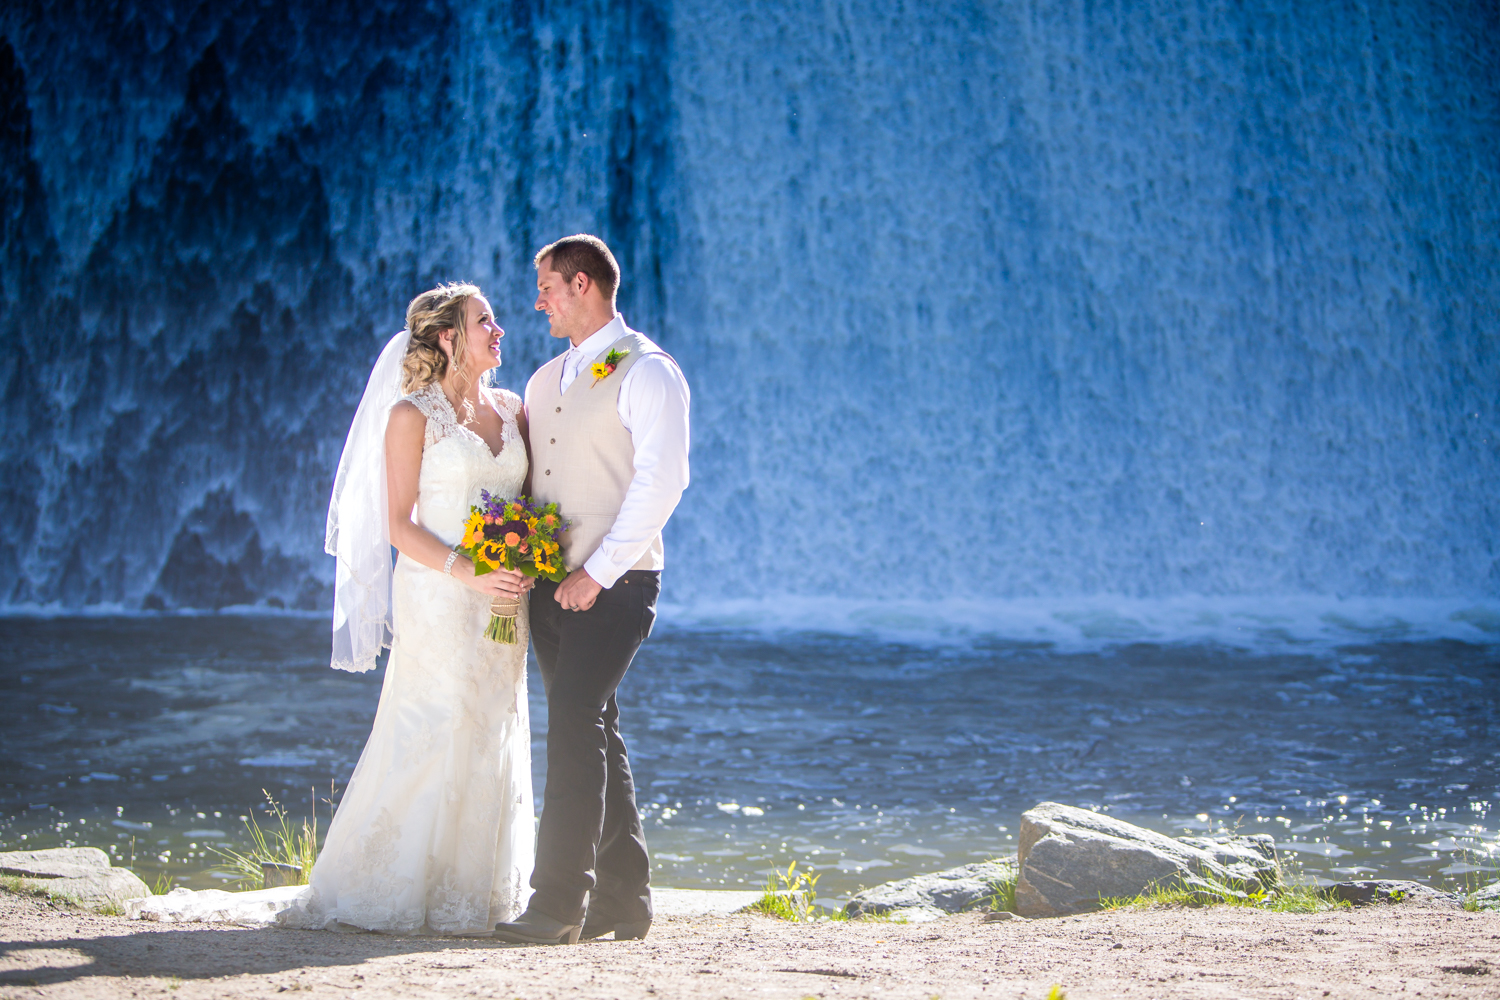 Evergreen Colorado Wedding photographed by JMGant Photography